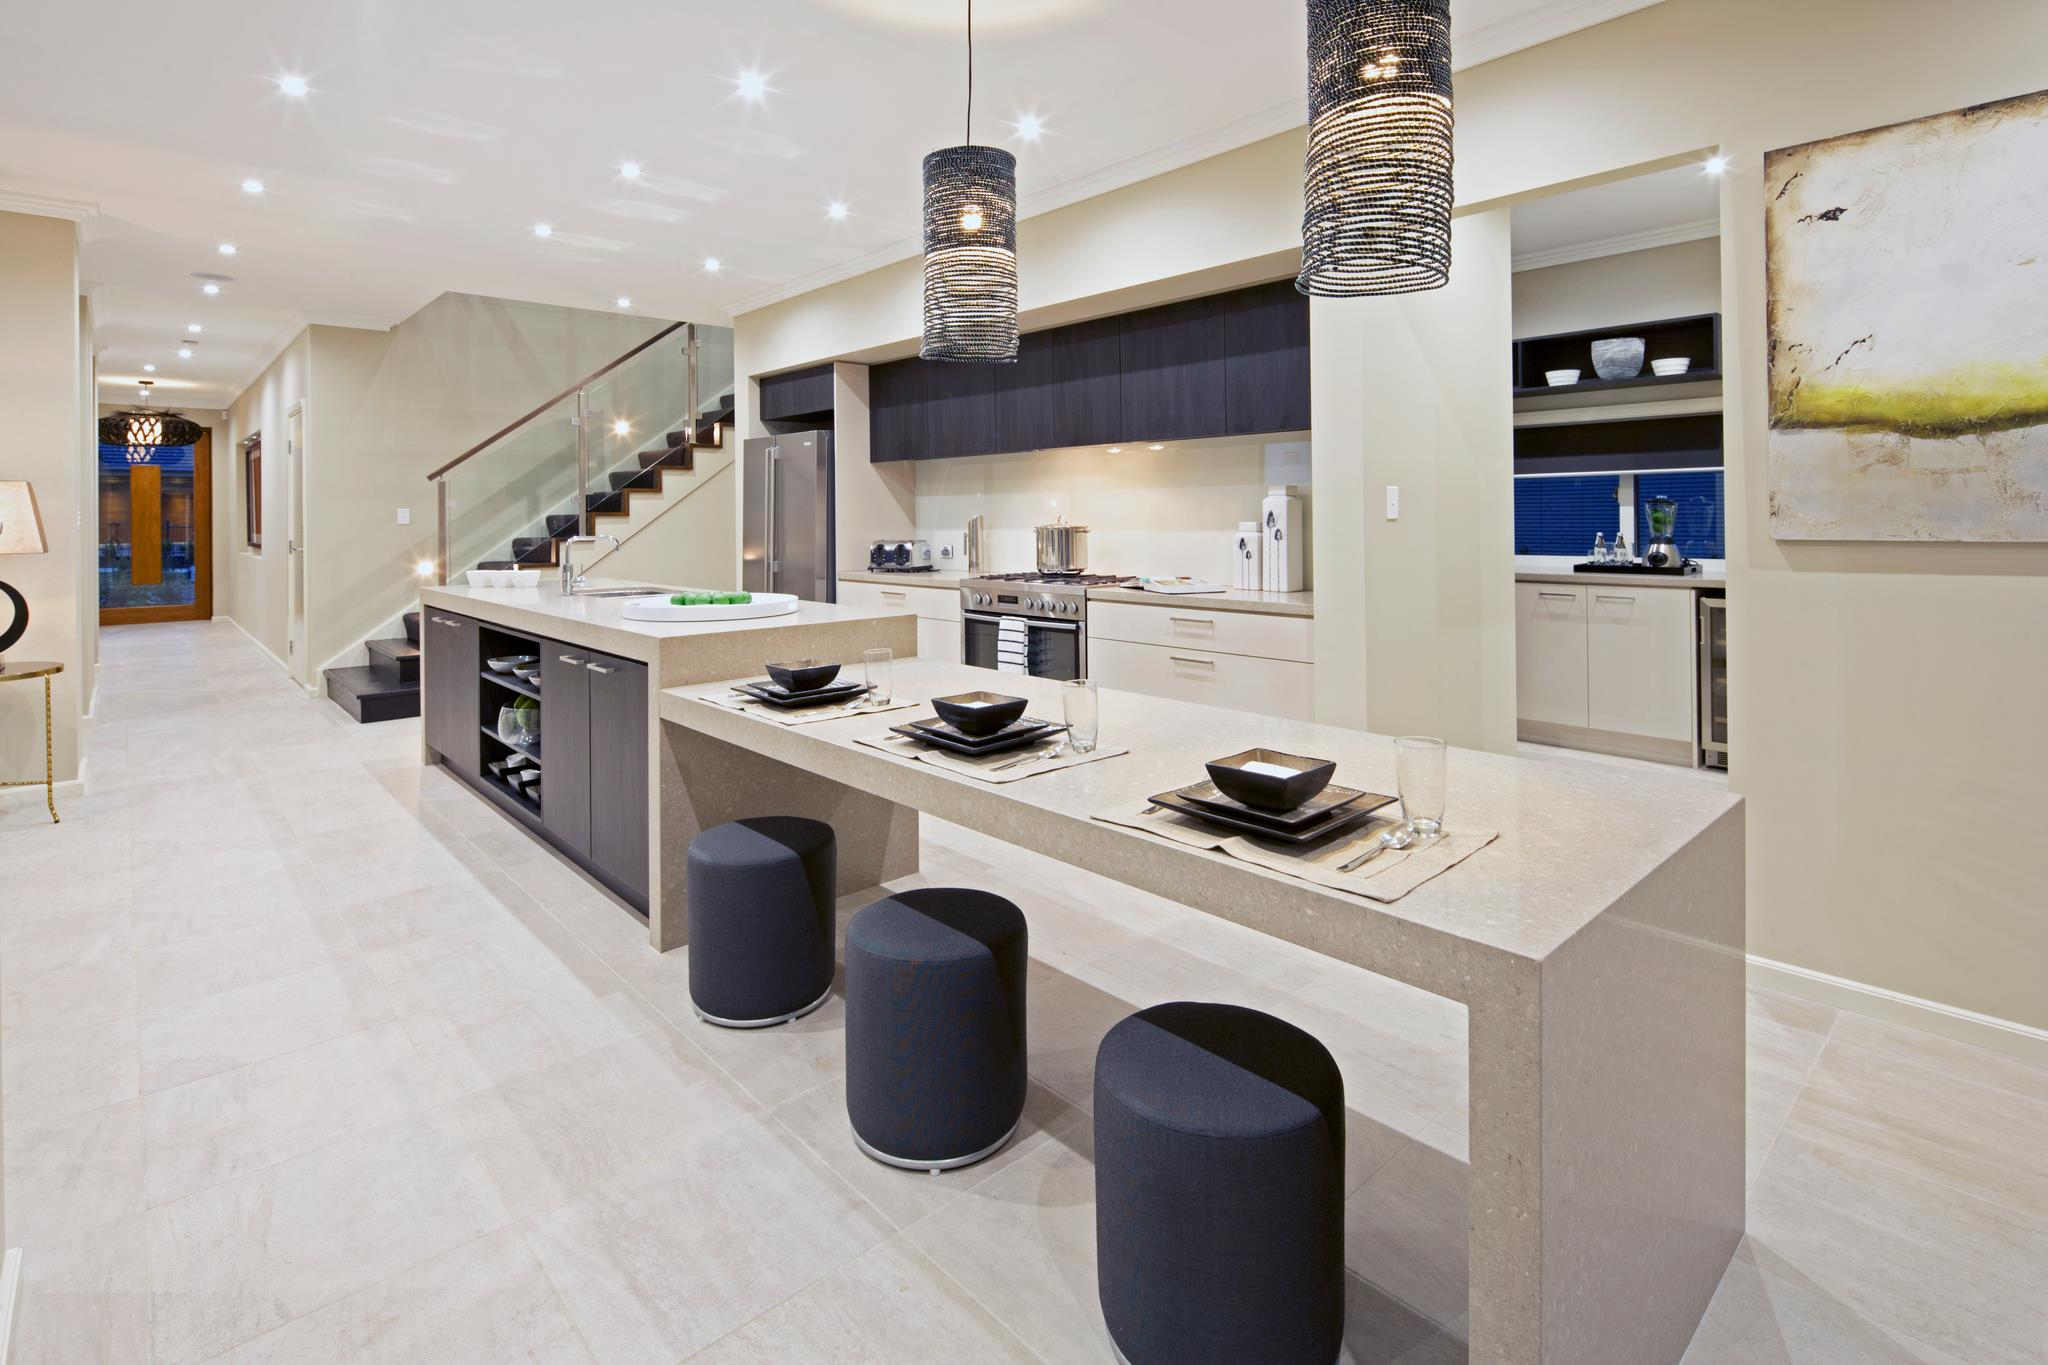 6 Top Tips for Kitchen Design